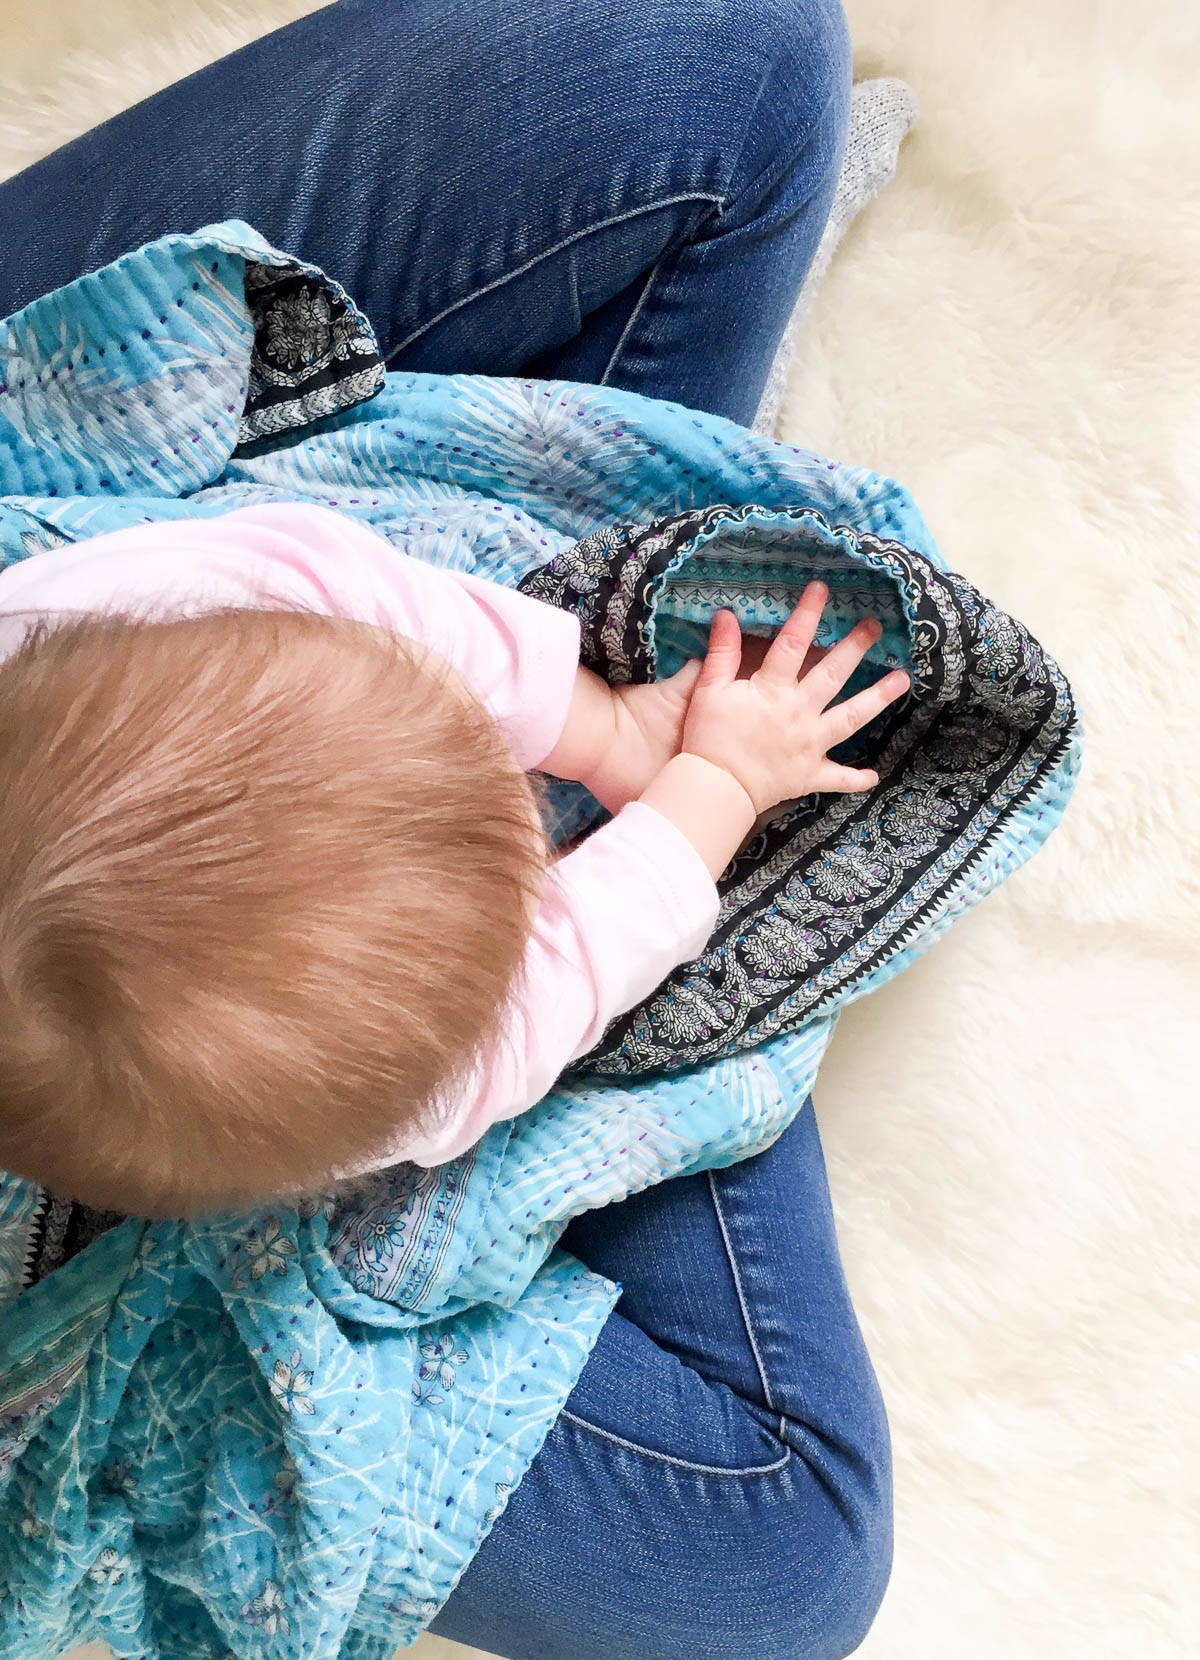 Buy The Change Blanket_Top Mommy bloggers in US